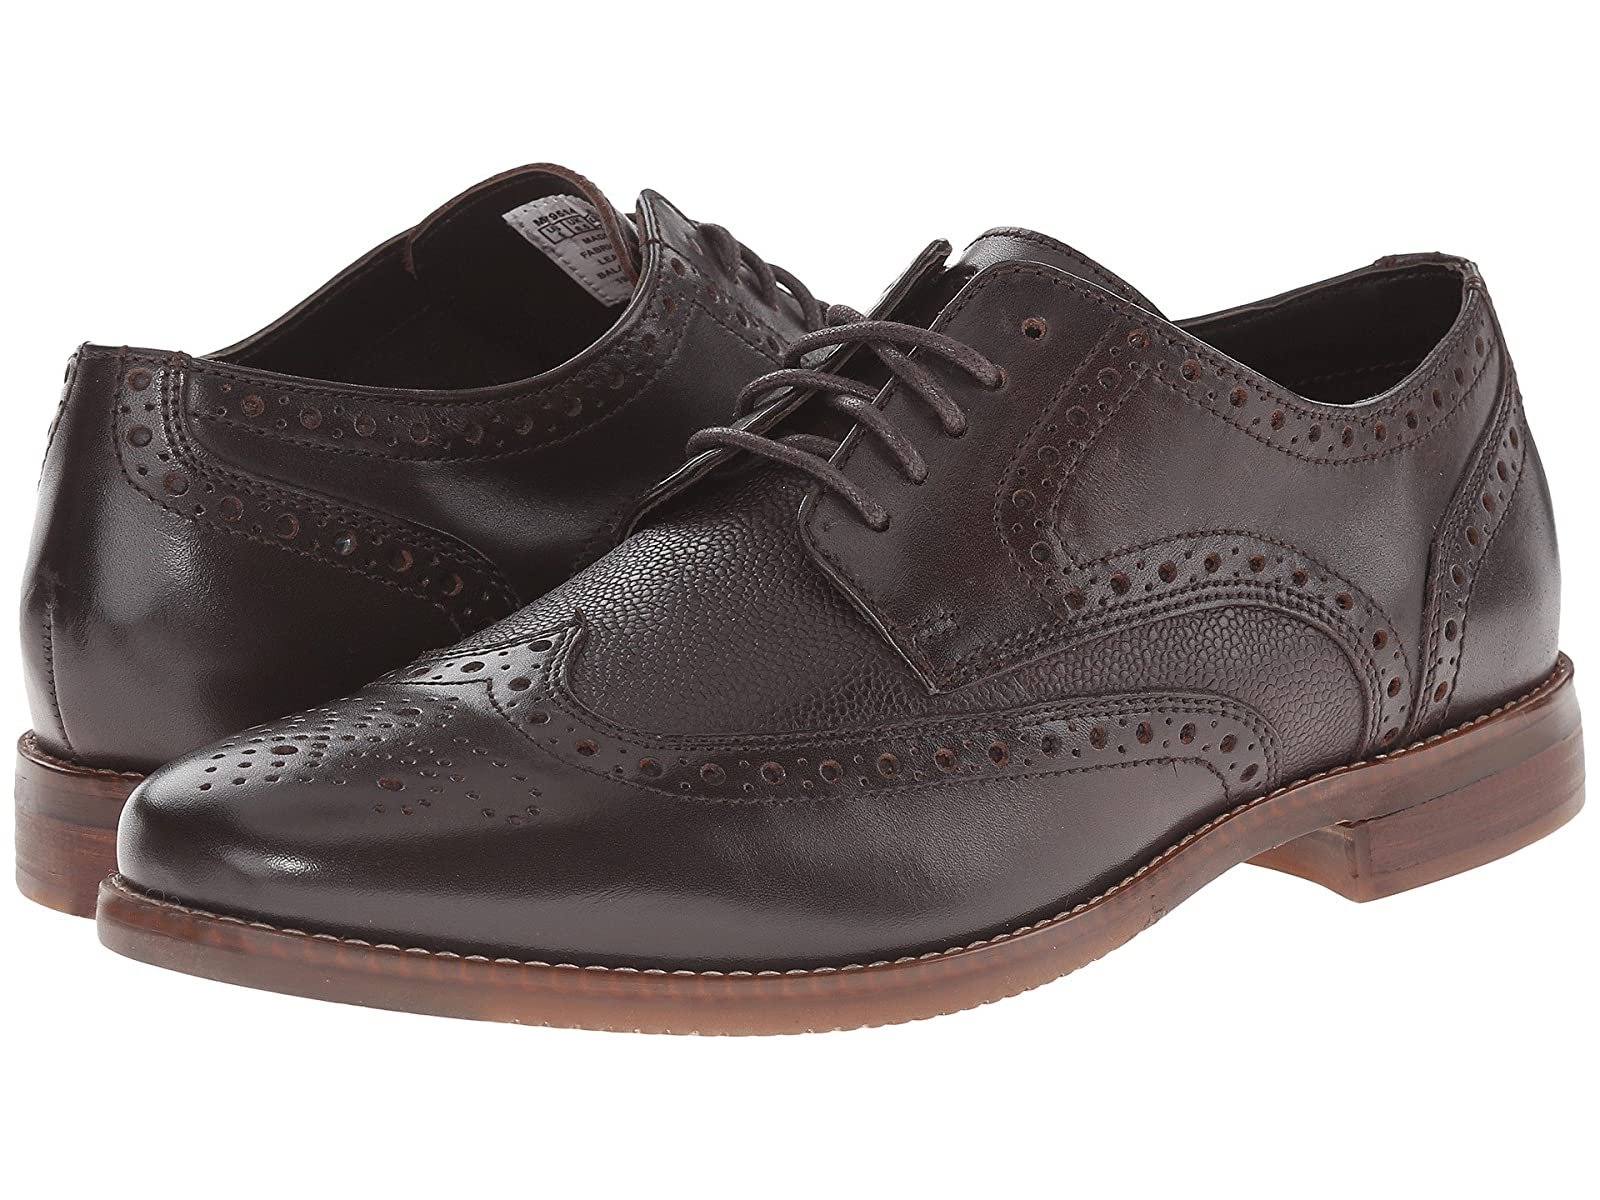 Rockport Style Purpose WingtipCheap and distinctive eye-catching shoes